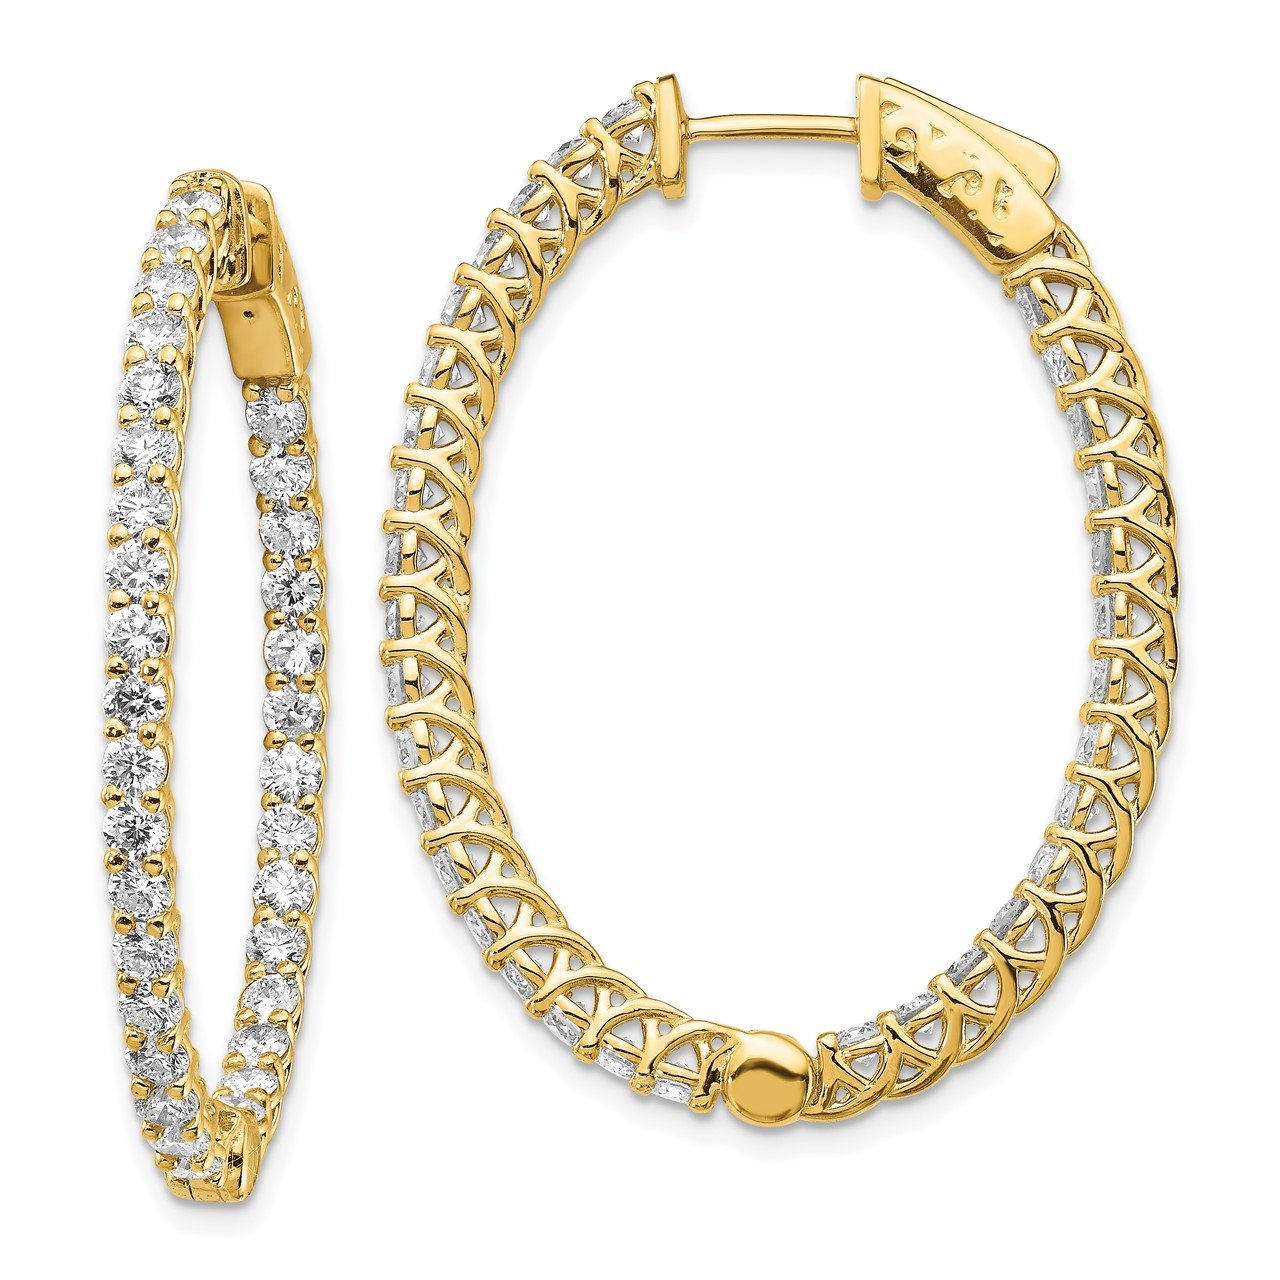 14k Diamond Oval Hoop with Safety Clasp Earrings